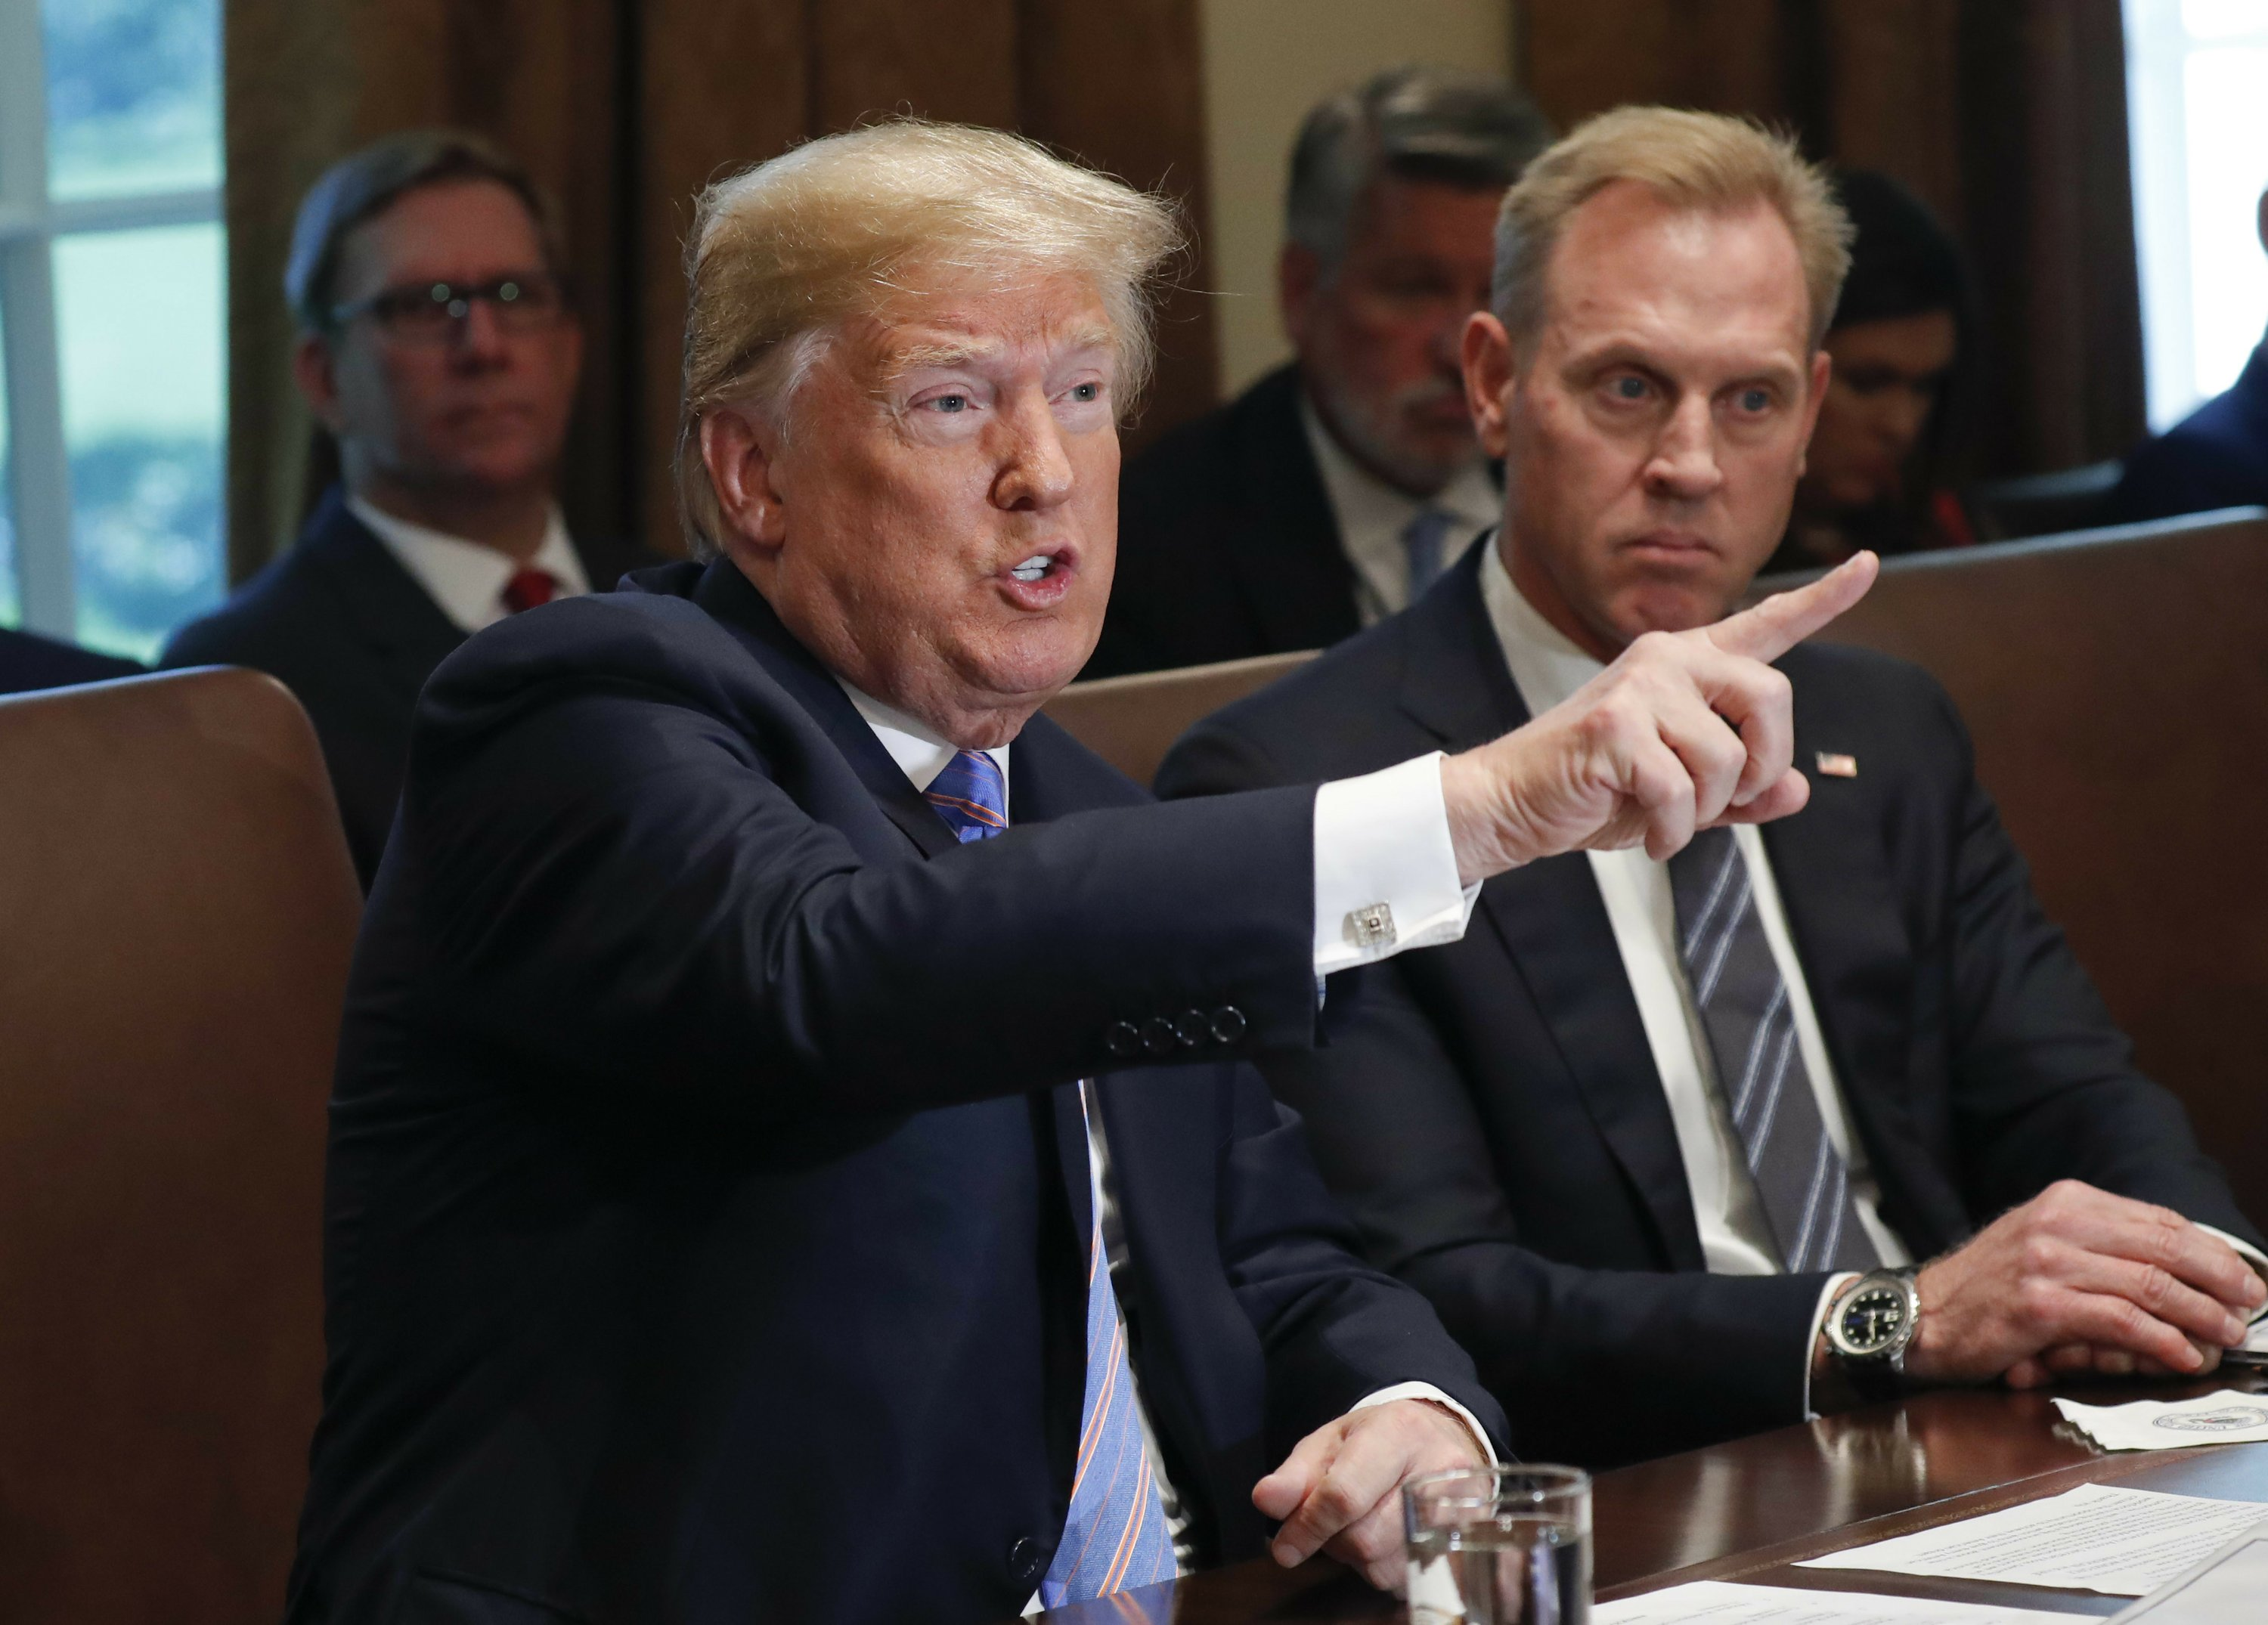 Amid harsh criticism, Trump tries a tougher tone on Russia